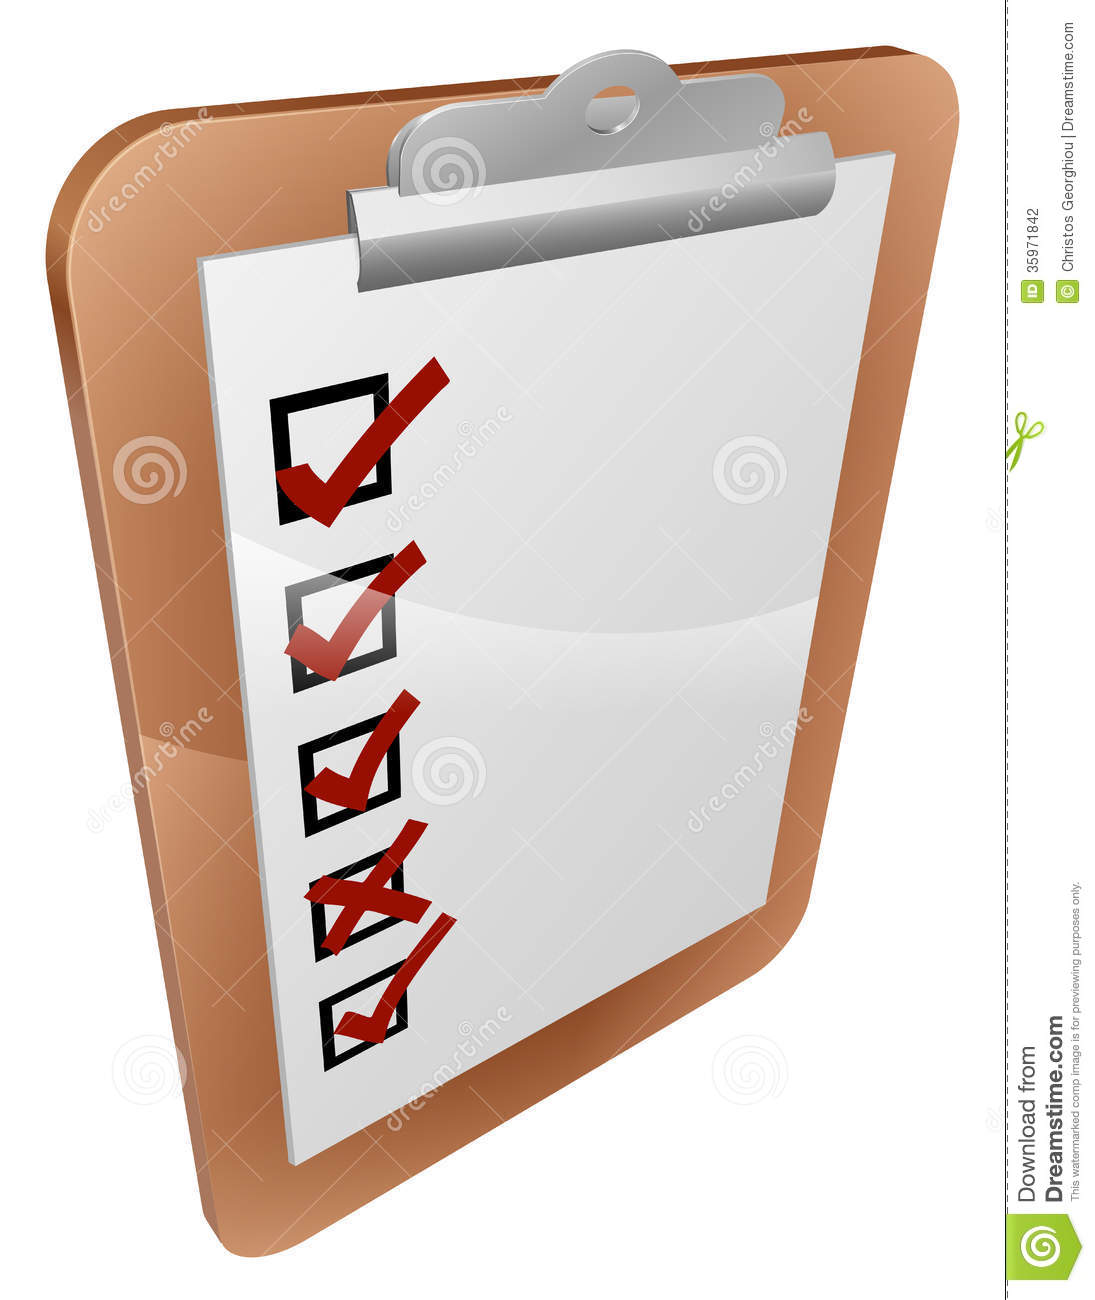 clipboard-survey-illustration-icon-form-tick-bo-35971842 Application Form Of Census on free blank,